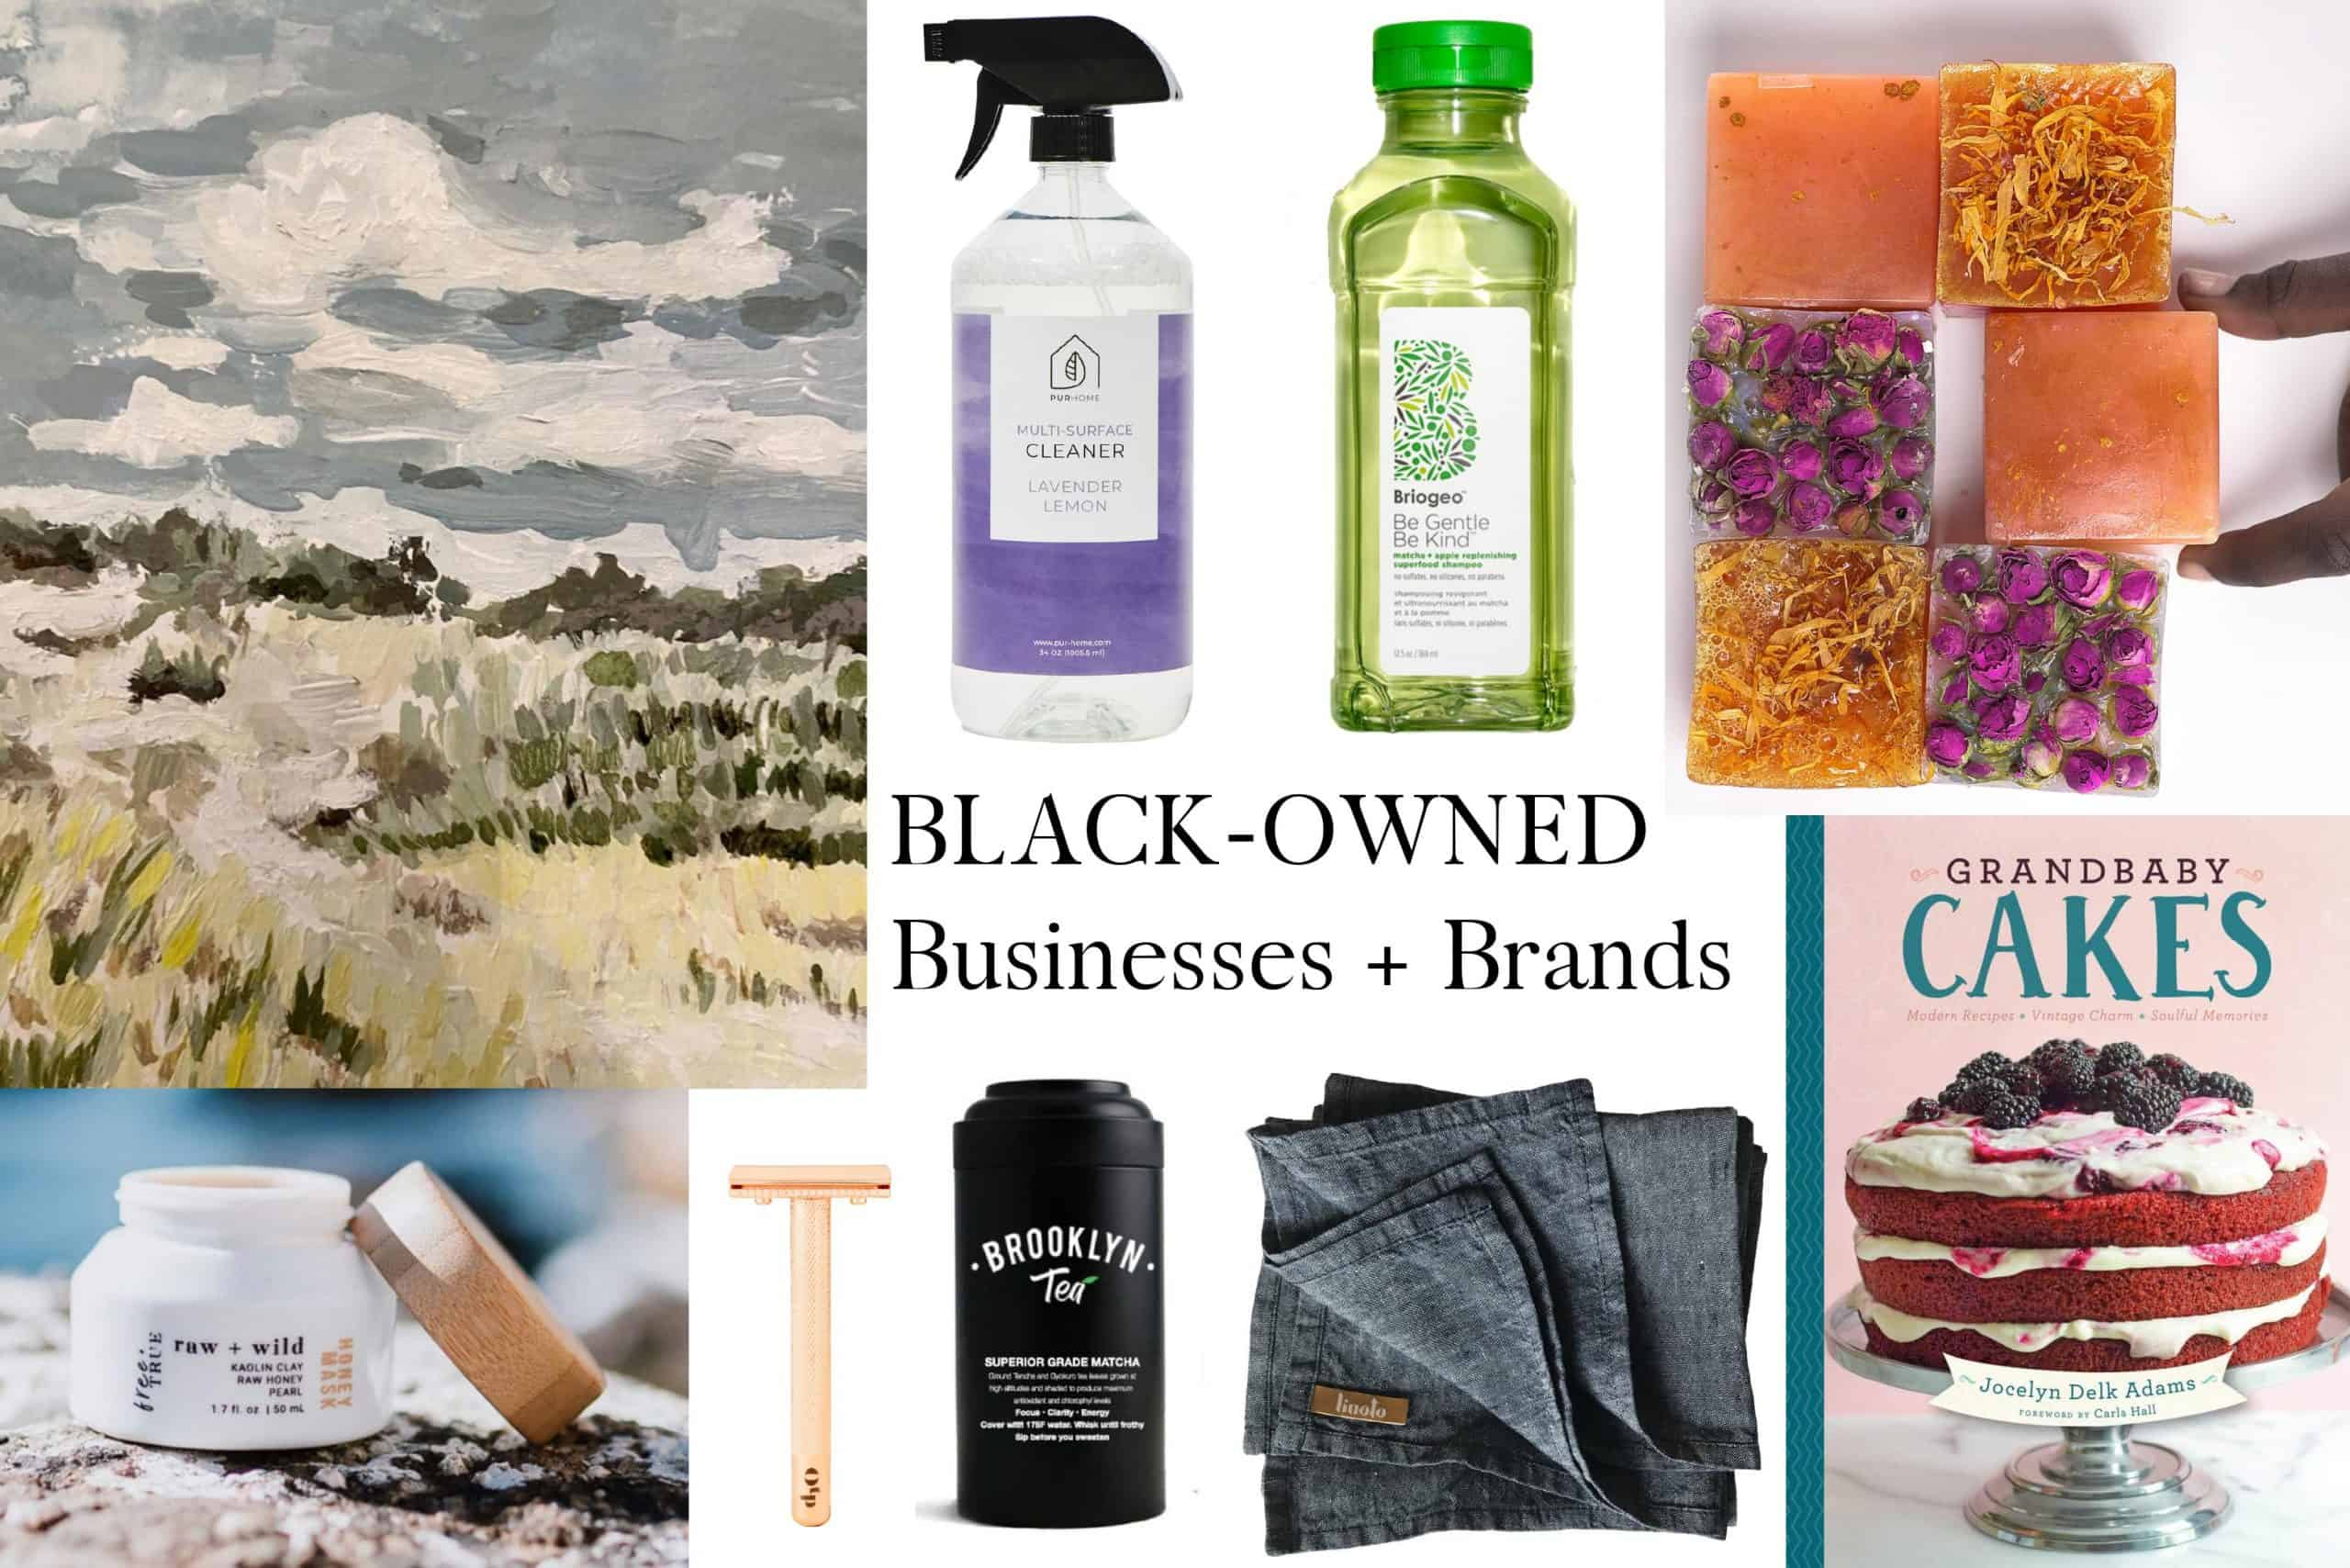 Collage of black-owned business products